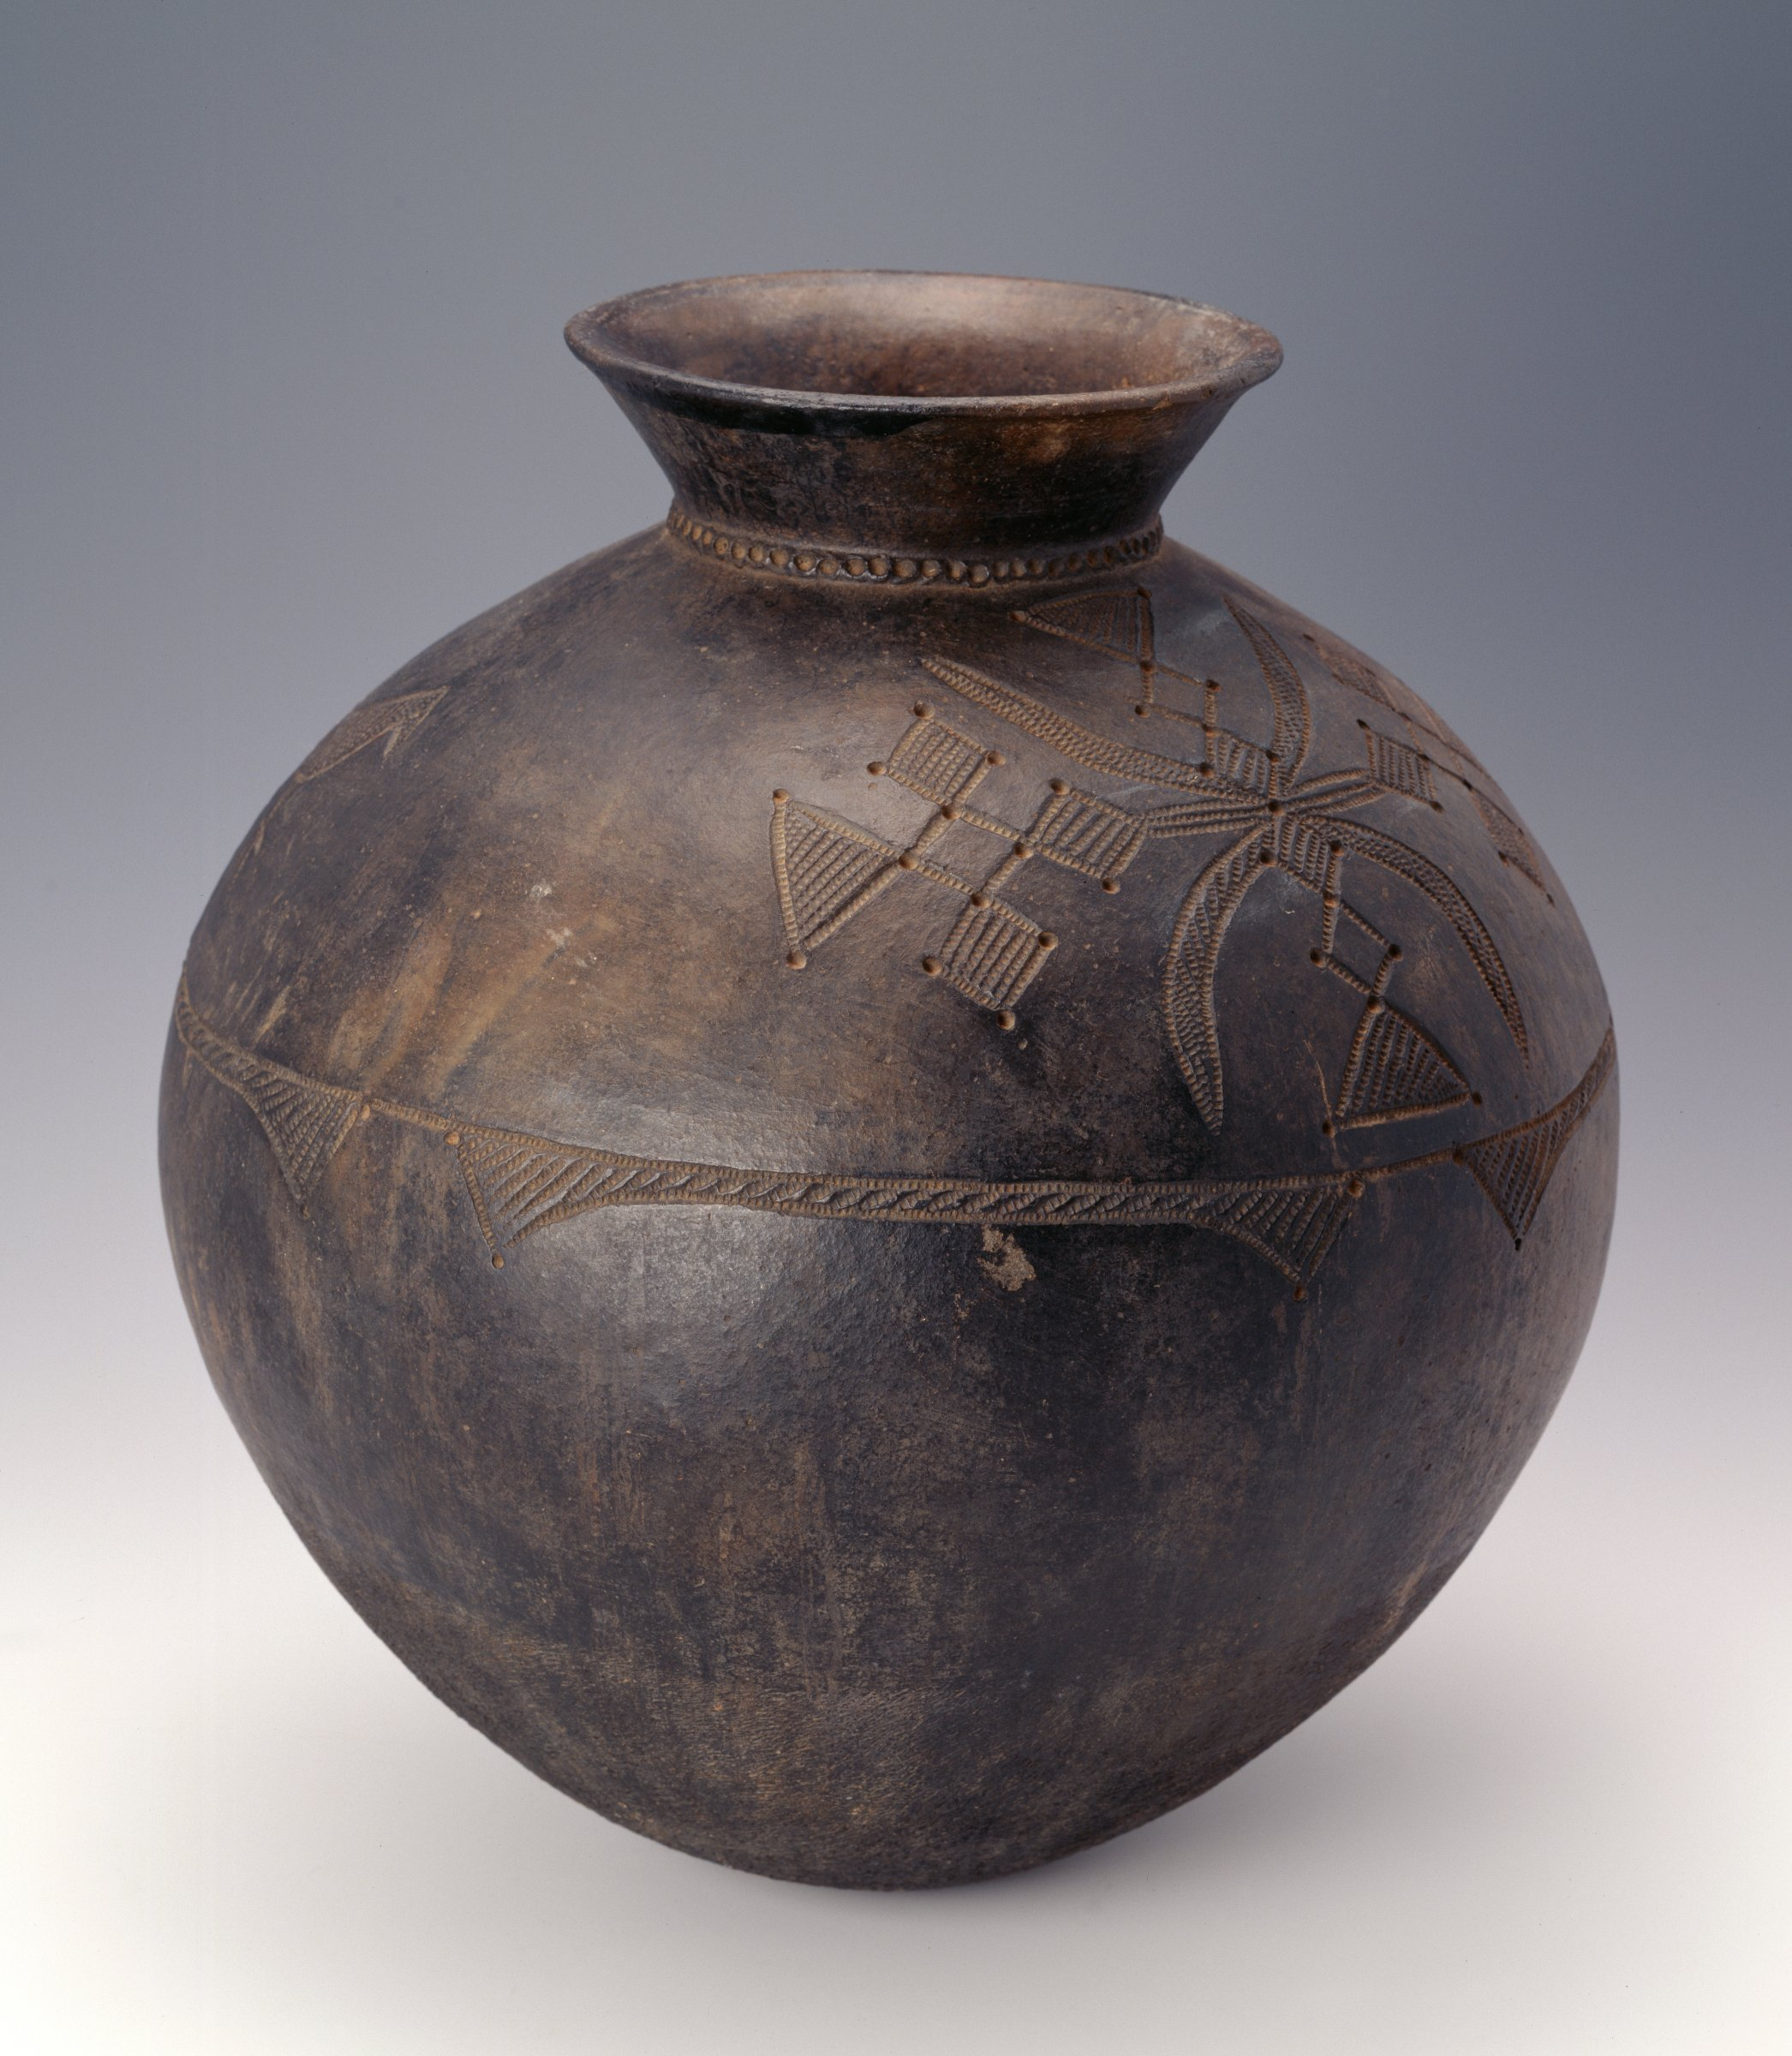 Dark brown, round vessel has narrow neck and flaring rim; shoulder has lizard and bird one one side, abstract pattern with diamonds and triangles on other.